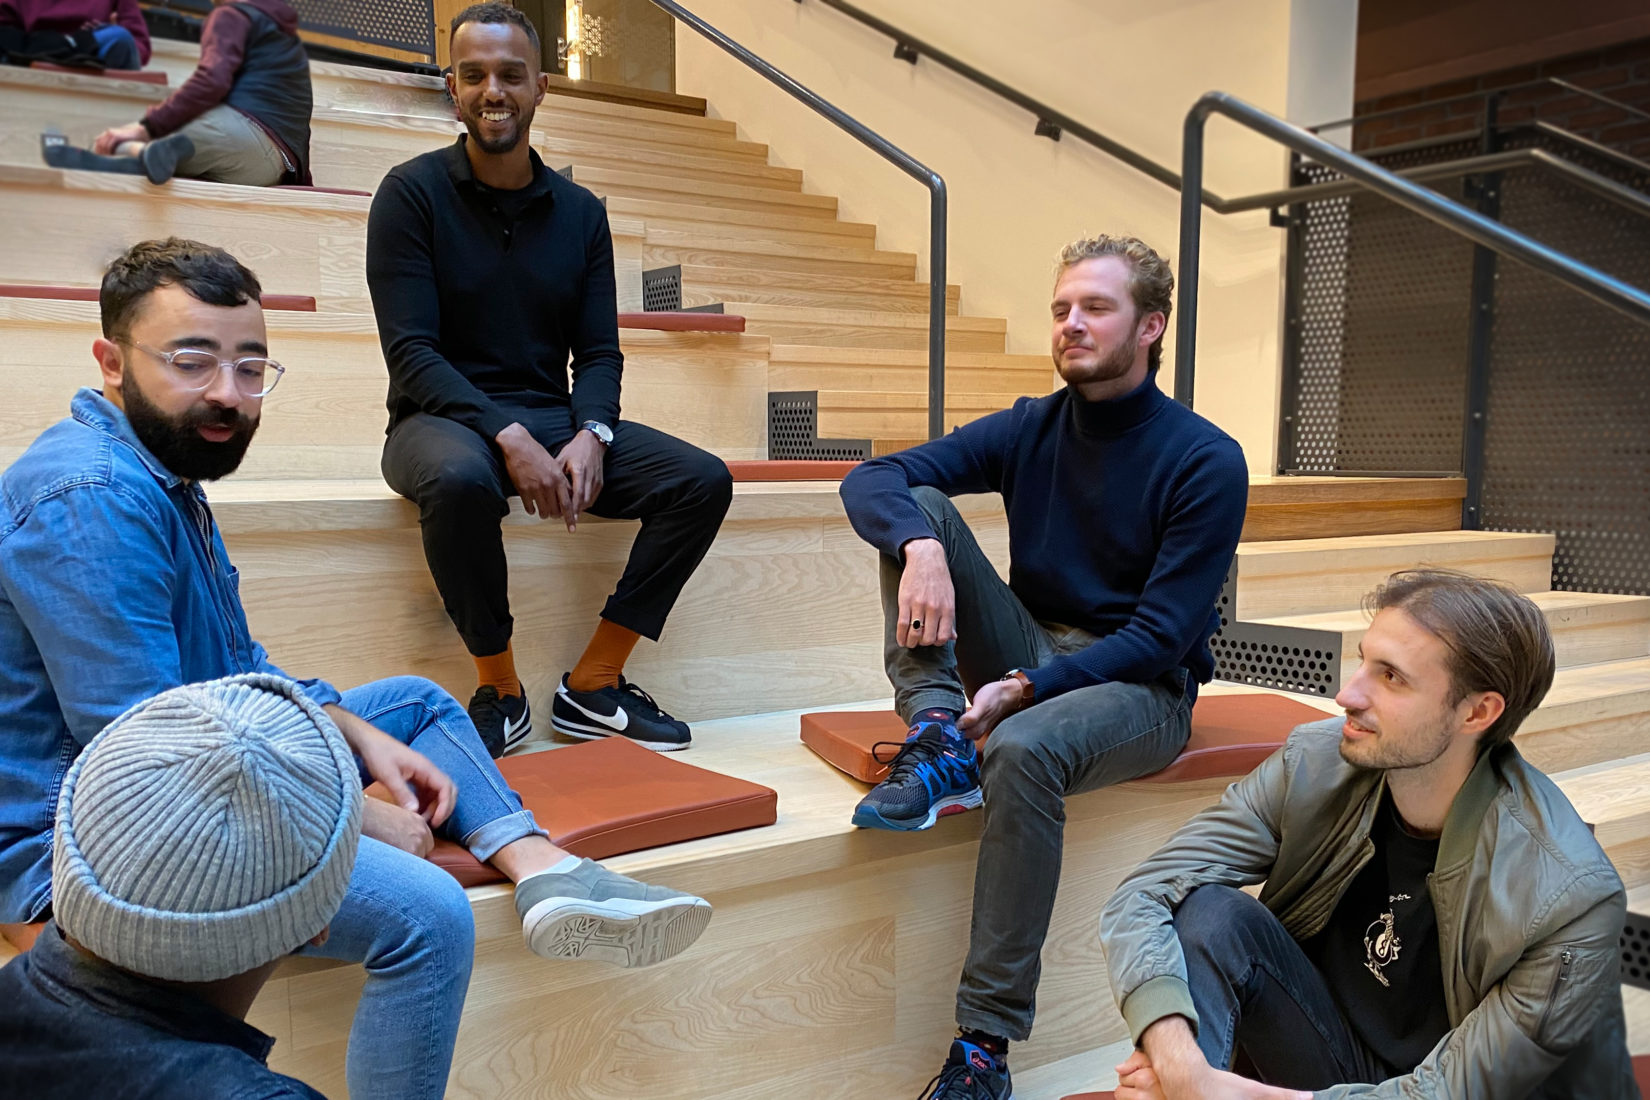 Five men sitting in a stair way construction having a discussion. #globalguytalk aims to bring med together and have discussions around topics they seldom speak about. Photo: Swedish Institute